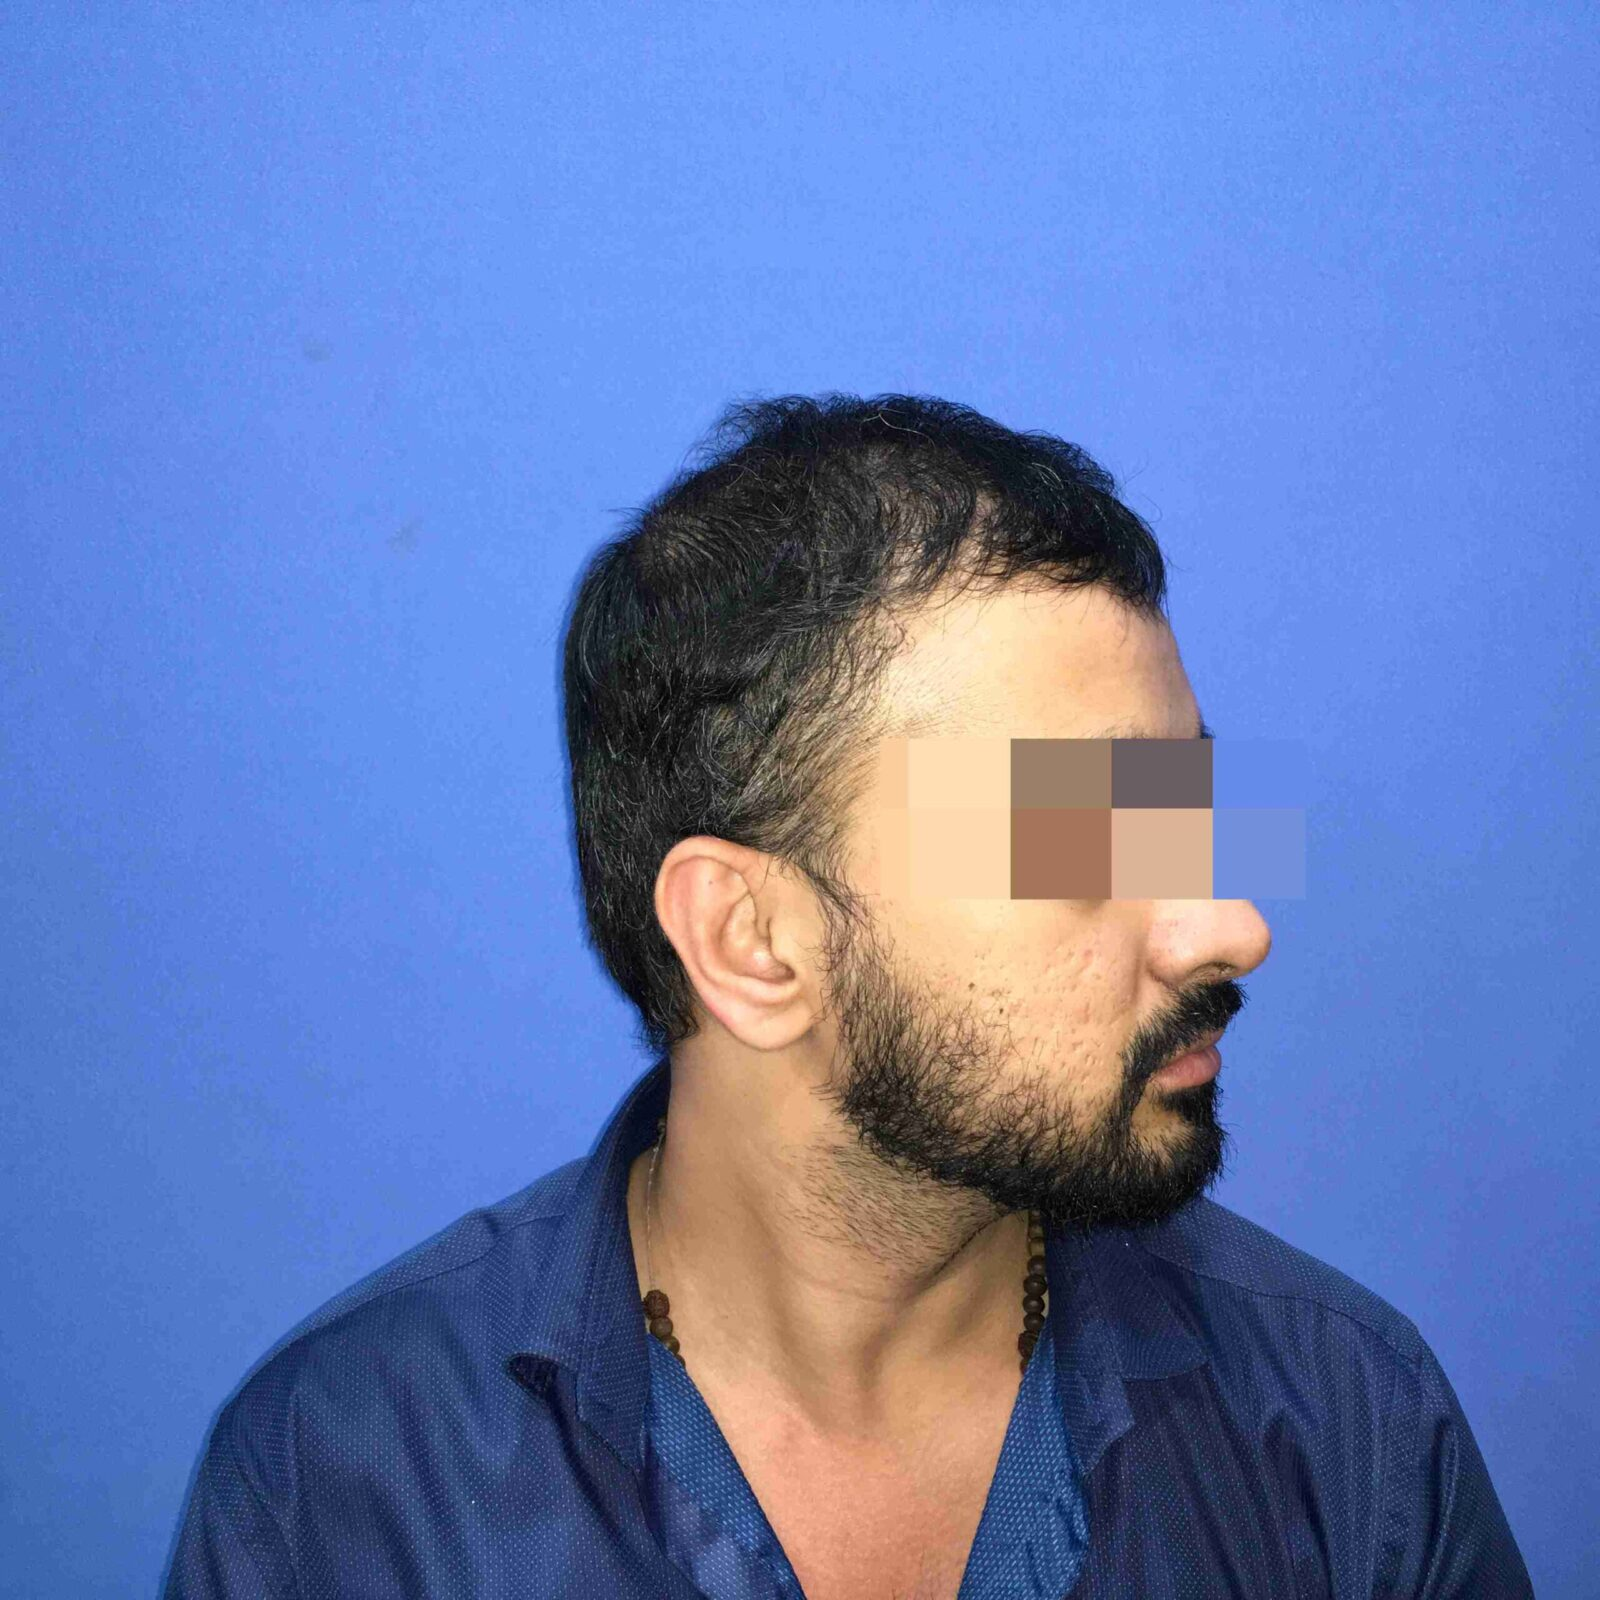 Delhi's Krishna Mishra After His Hair Transplant